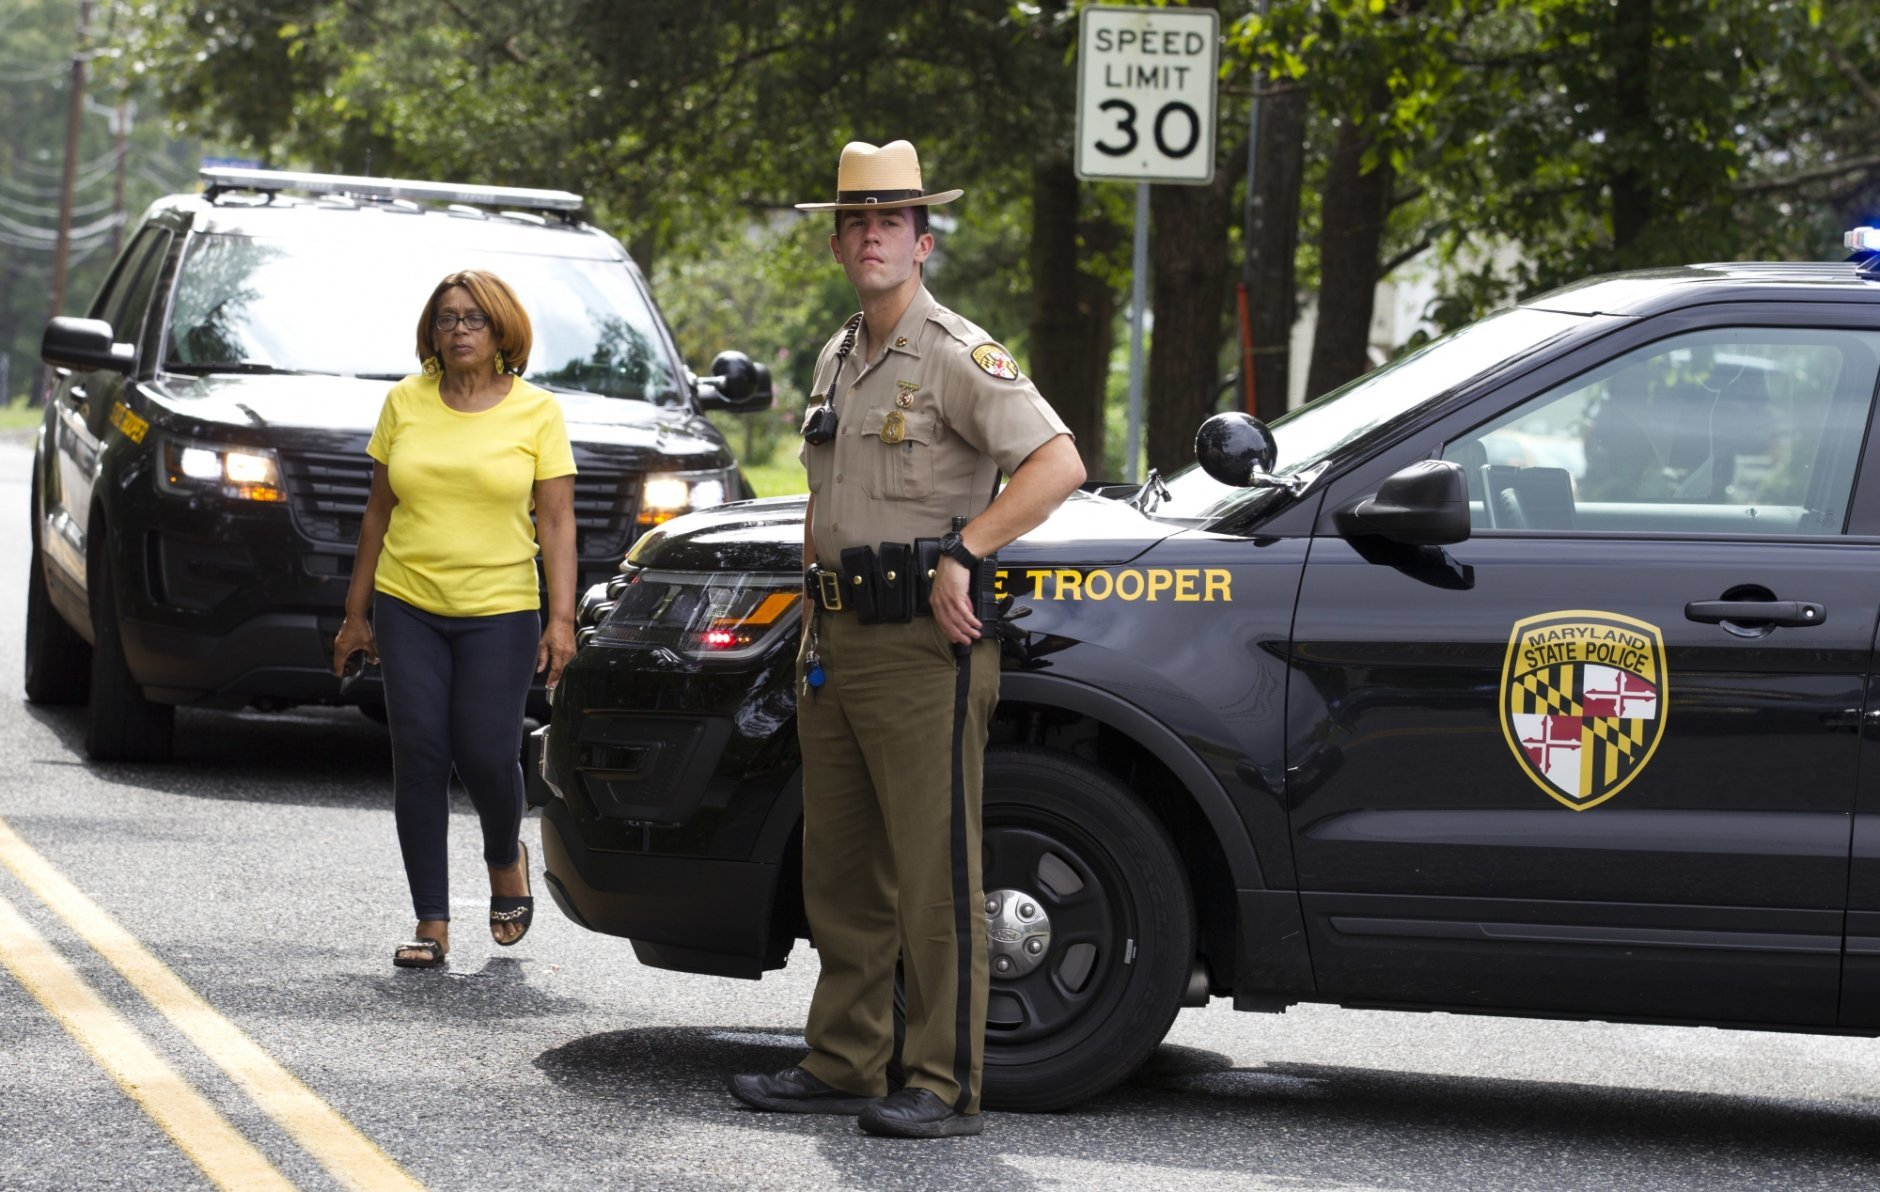 """Maryland state police block the road that connects the industrial business park, where several people had been shot, in Harford County, Md, Thursday, Sept. 20, 2018. Authorities say multiple people have been shot in northeast Maryland in what the FBI is describing as an """"active shooter situation."""" (AP Photo/Jose Luis Magana)"""